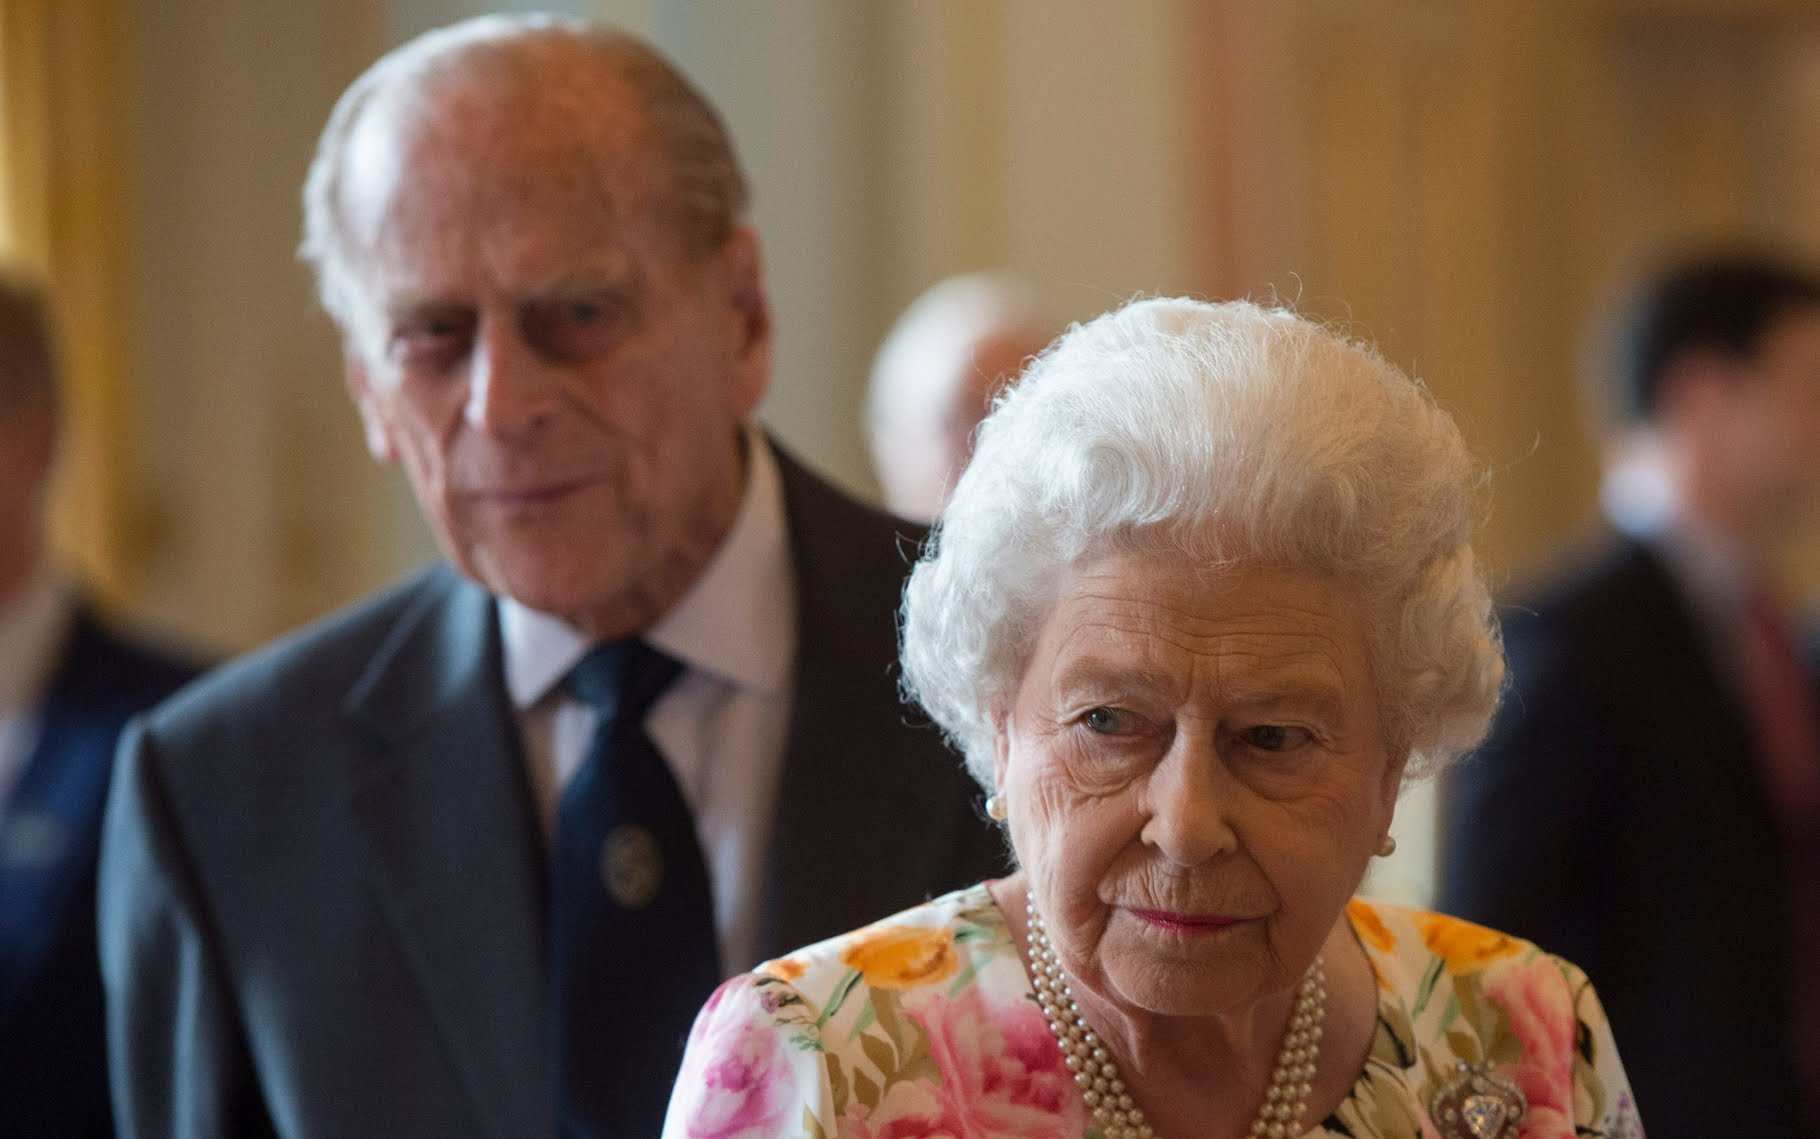 Queen was told she should not marry Prince Philip by courtiers because he was too funny, biographer claims